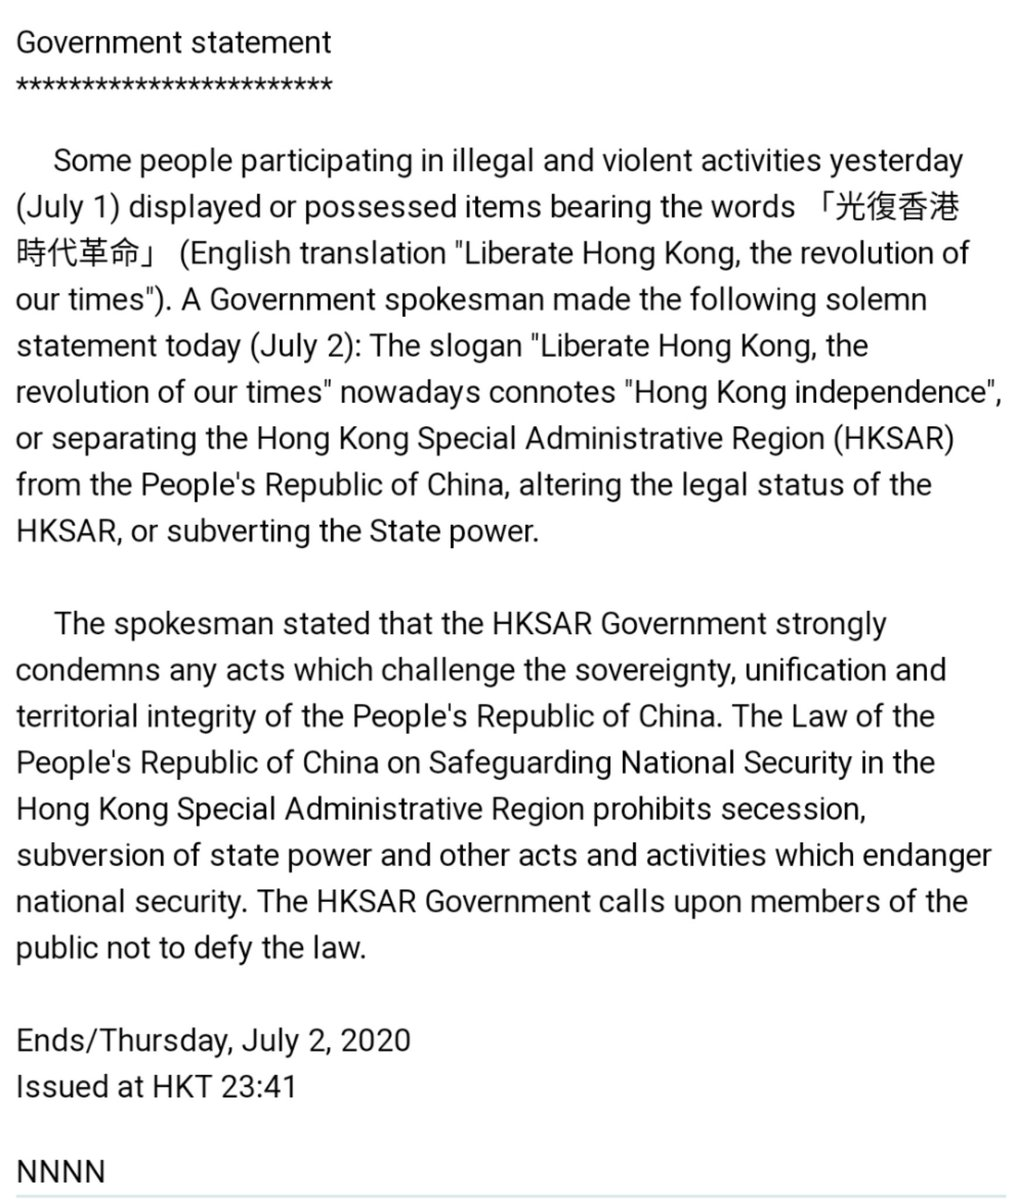 "12 hours ago, the #HongKong govt declared: ""You cannot use these words.""  It is tempting to think this only targets protesters, but look at the essence: it  targets LANGUAGE. This is a press freedom issue. And it's the duty of journalists to draw a line in the sand. https://t.co/EBYNBO0dBy"